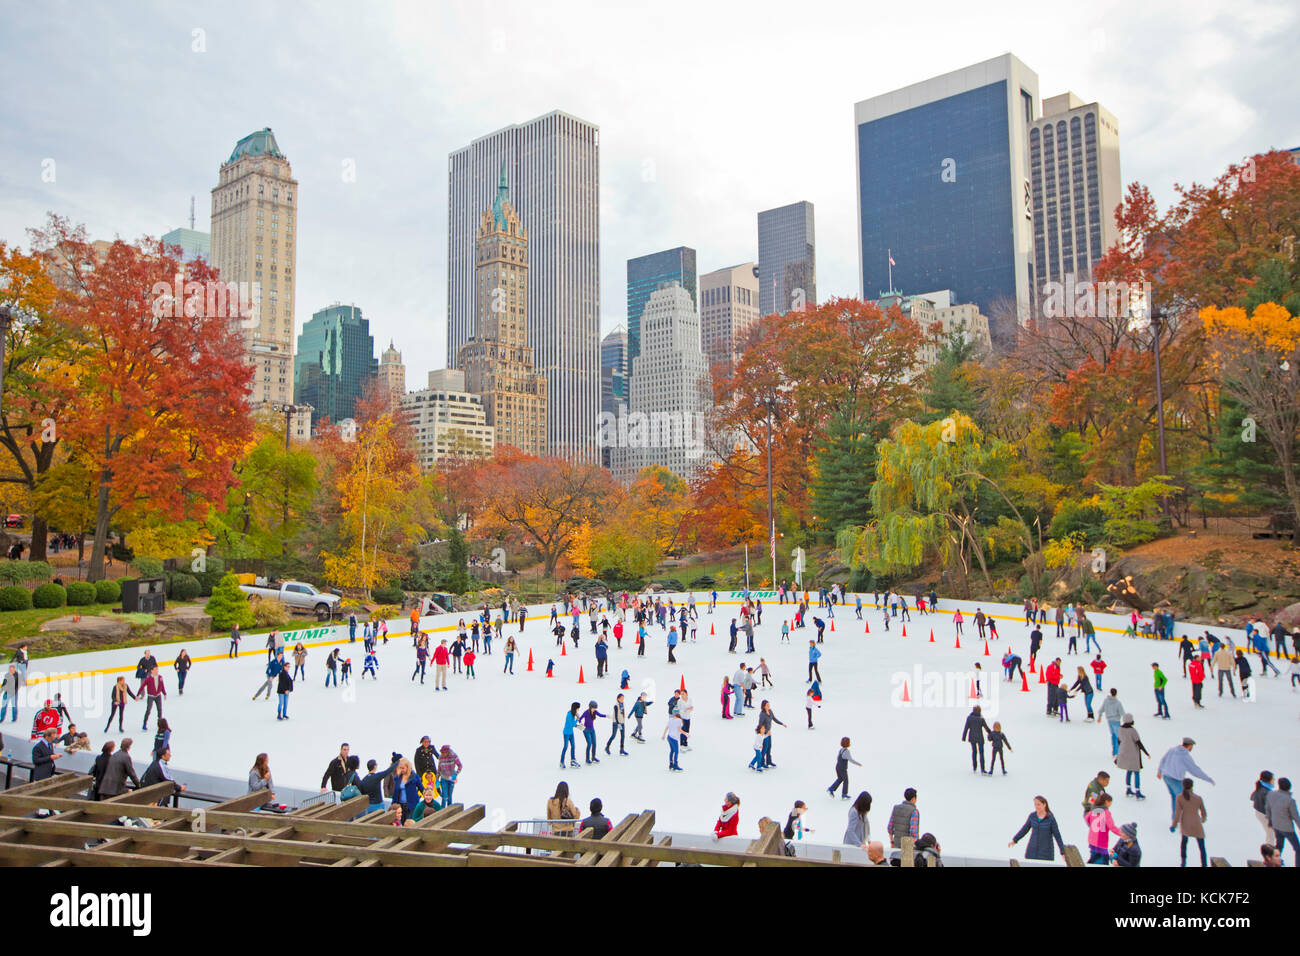 Ice skaters in New York central park during the fall Stock Photo